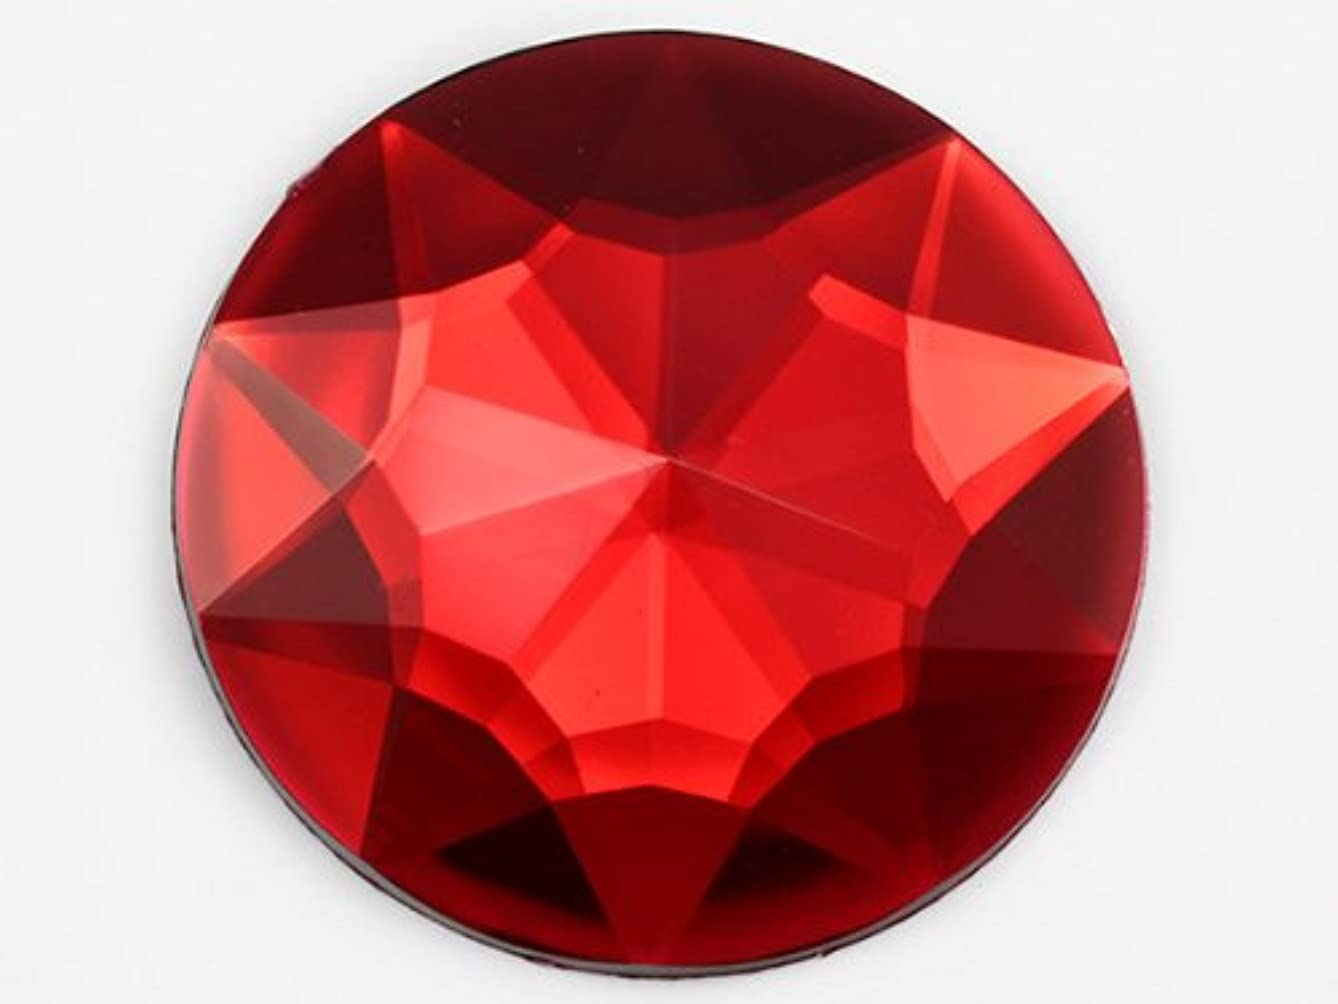 43mm Ruby H103 Large Self Adhesive Round Jewels - 2 Pieces